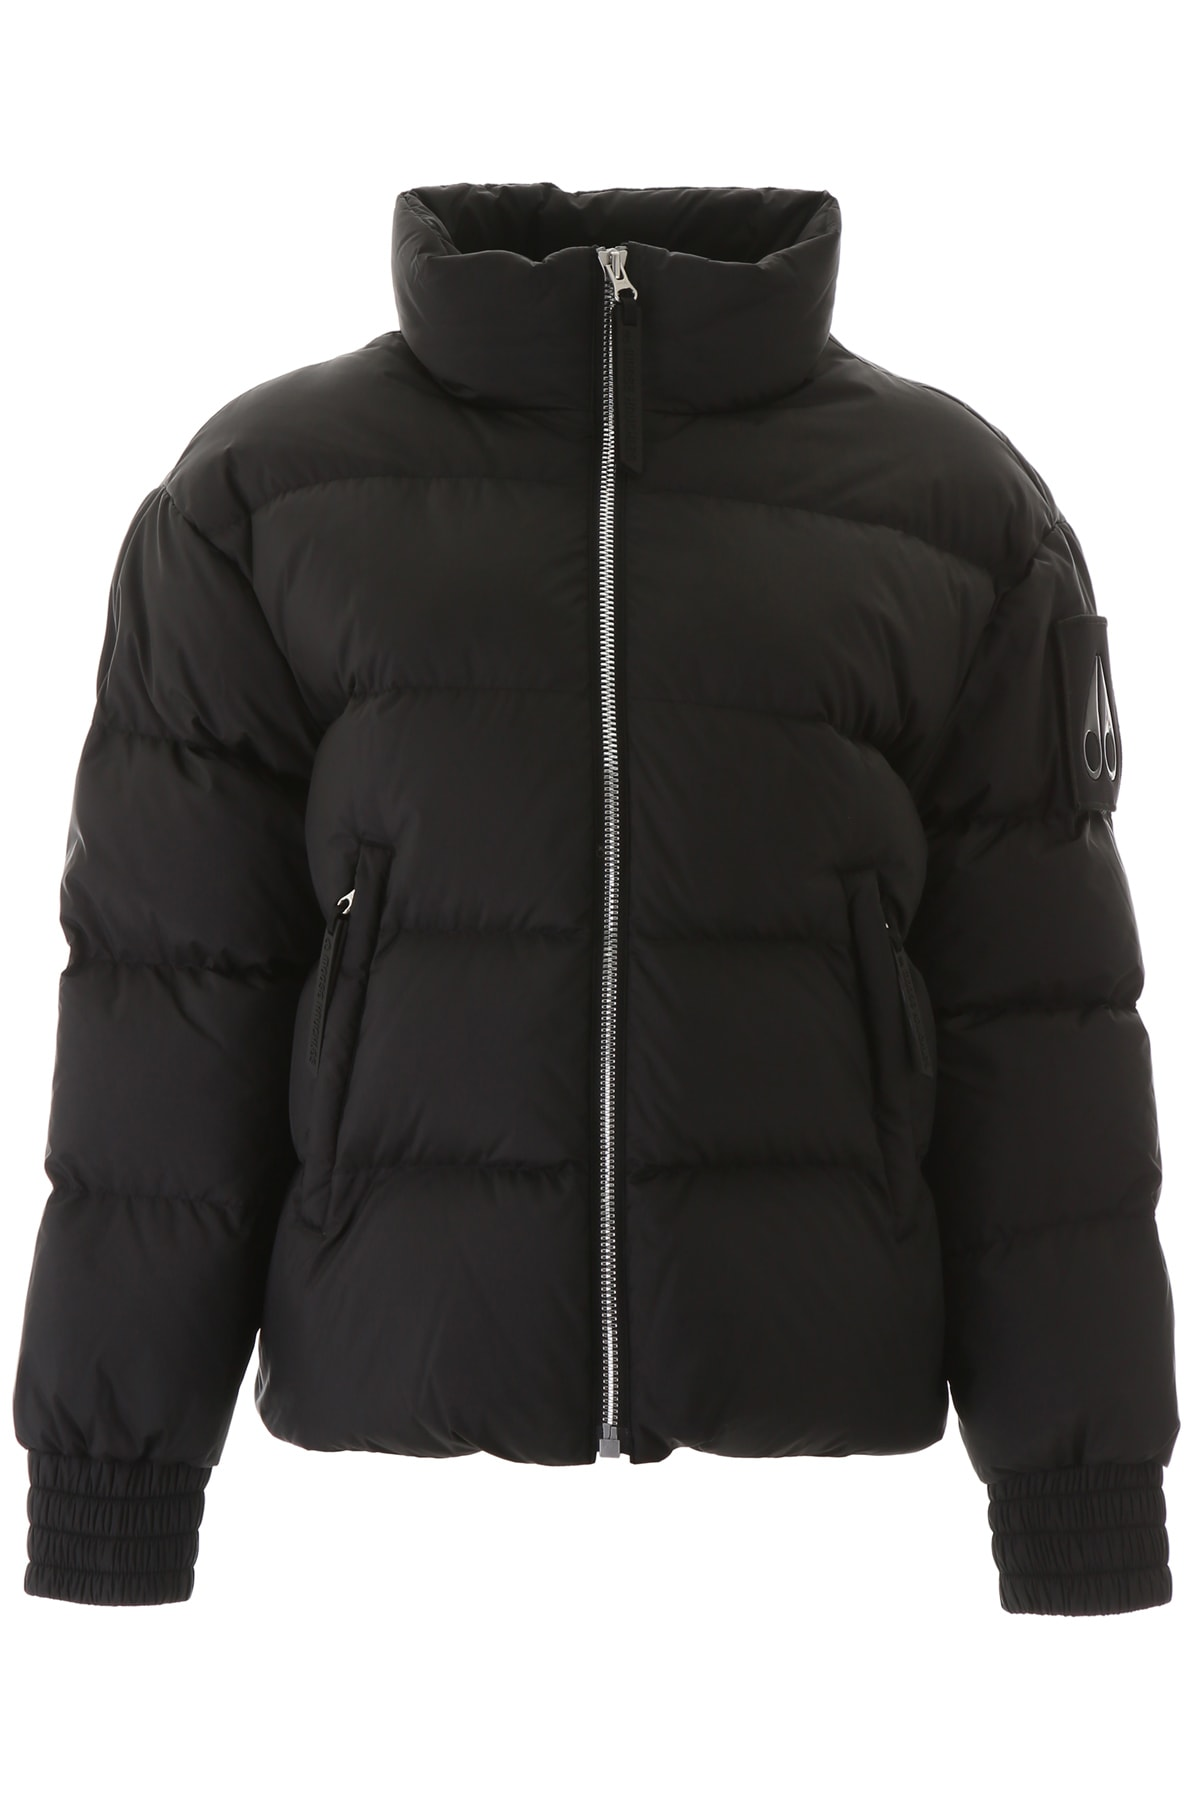 Moose Knuckles Lumsden Puffer Jacket